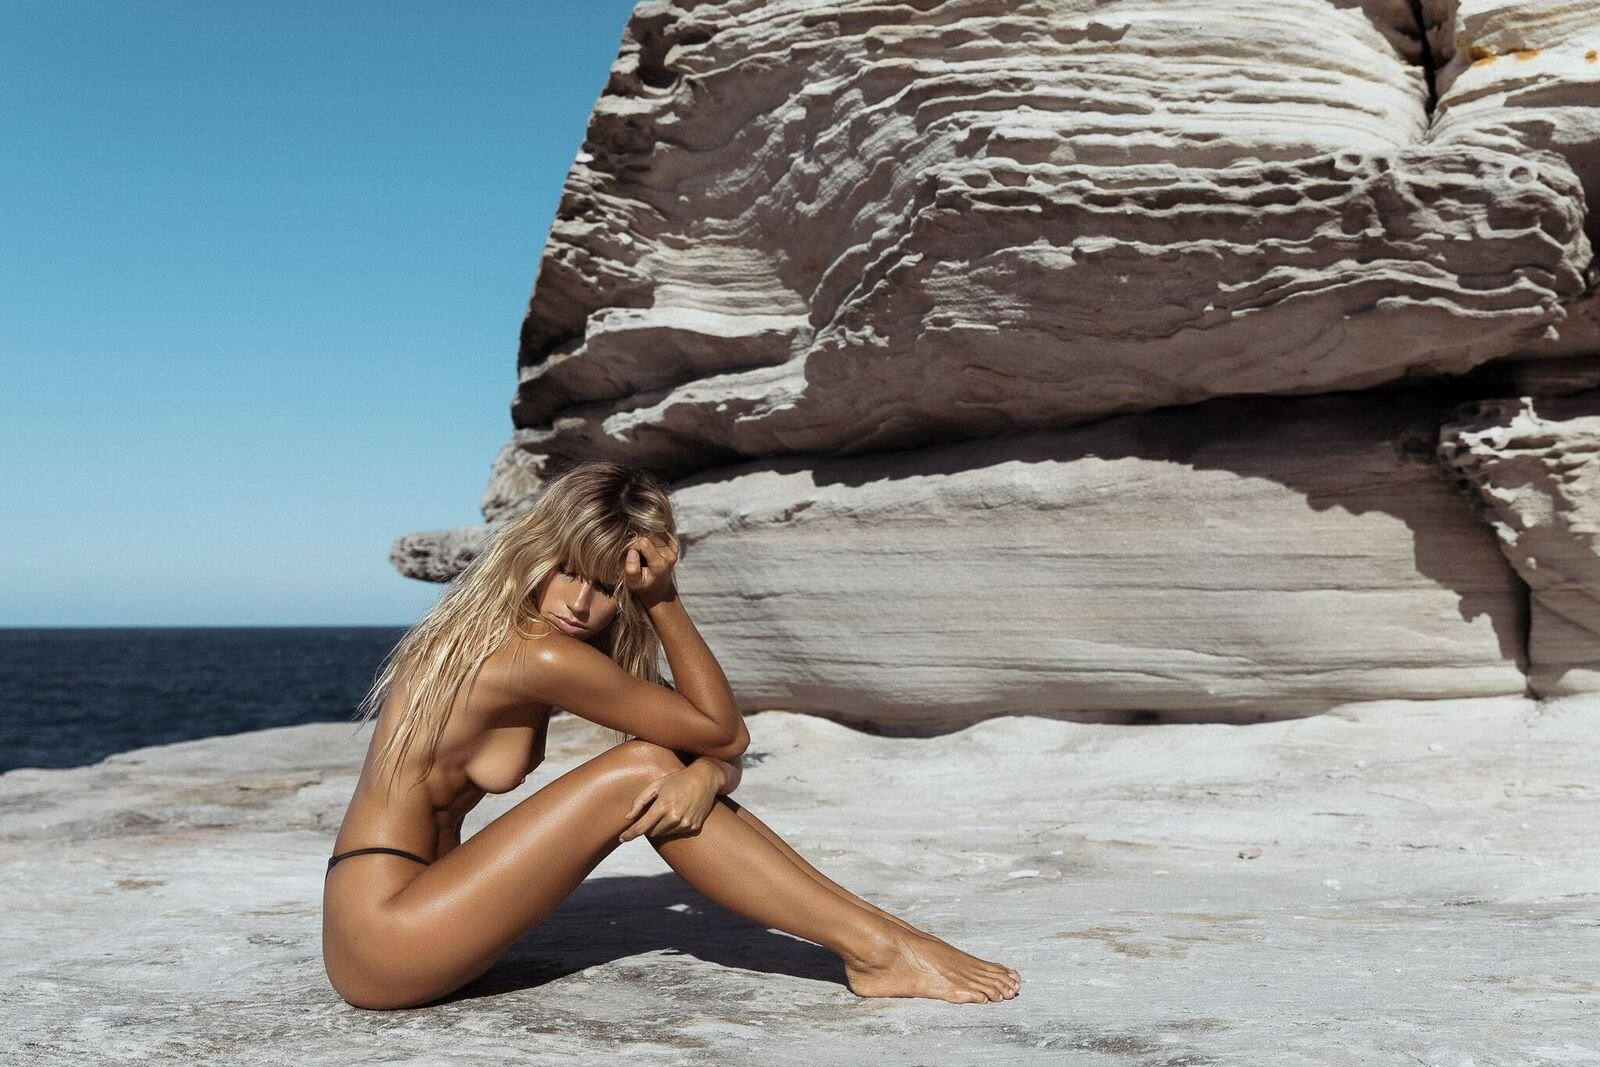 Maddy relph sexy topless - 2019 year